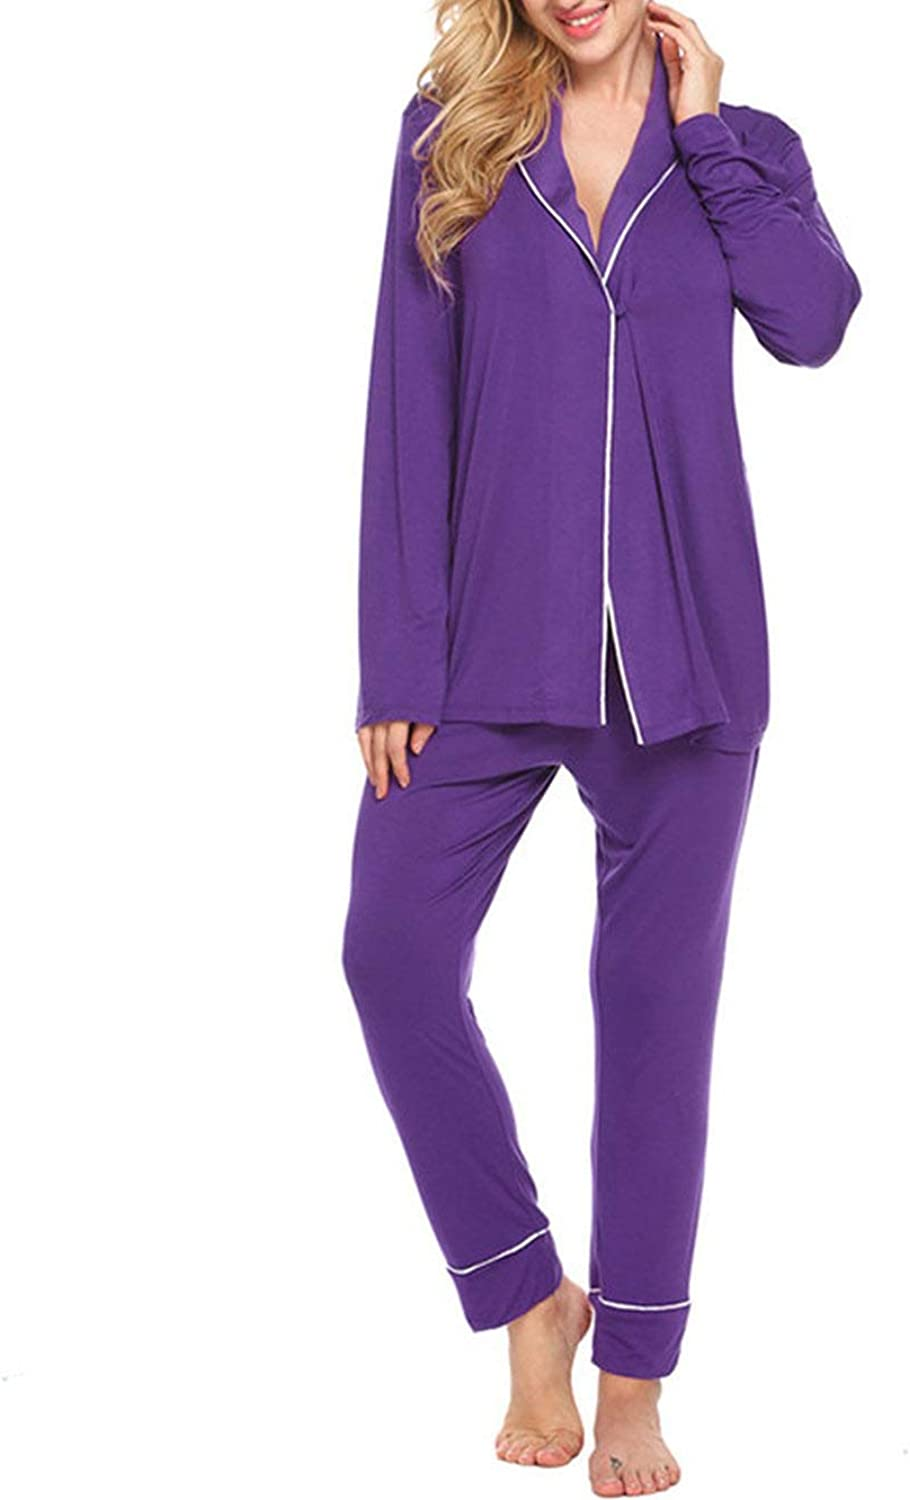 Be fearless Womens Pajamas Long Sleeve Solid Stretch Sleepwear Set Two Pieces Pajamas Sets